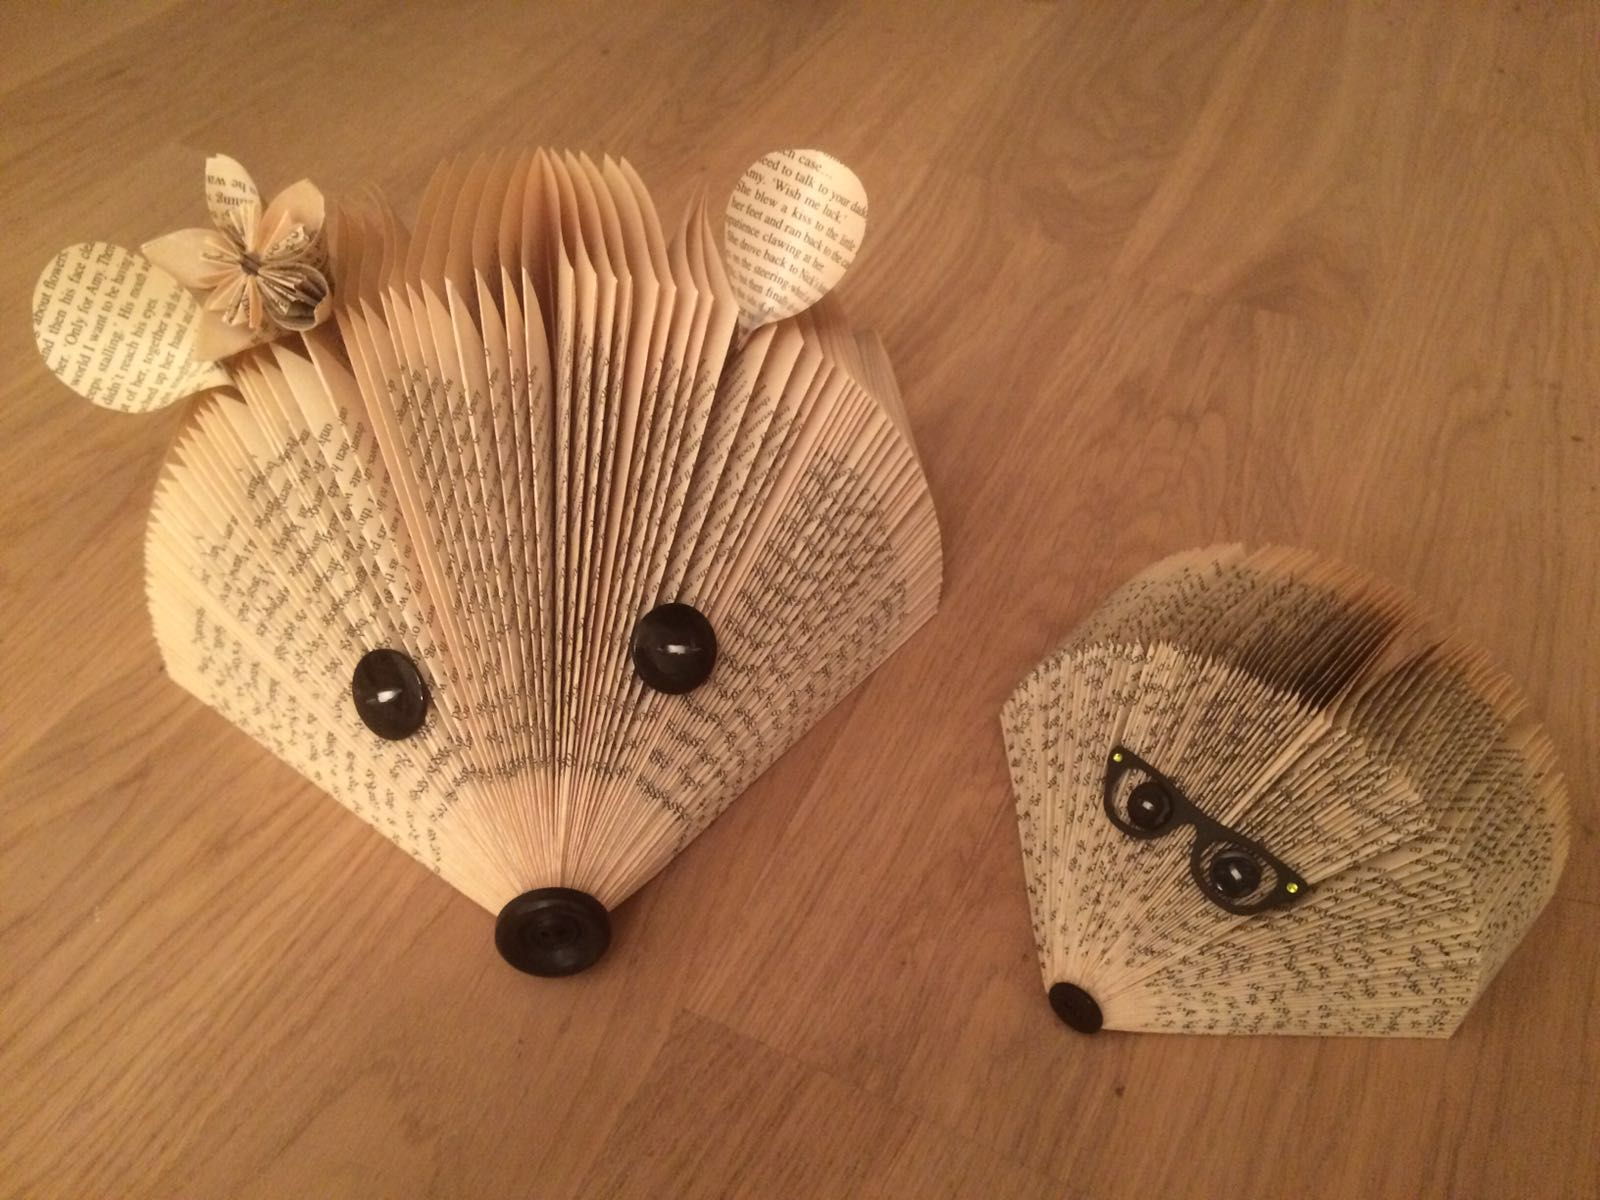 How To Make A Book Hedgehog ~ Ashtead card making and craft club folded book art